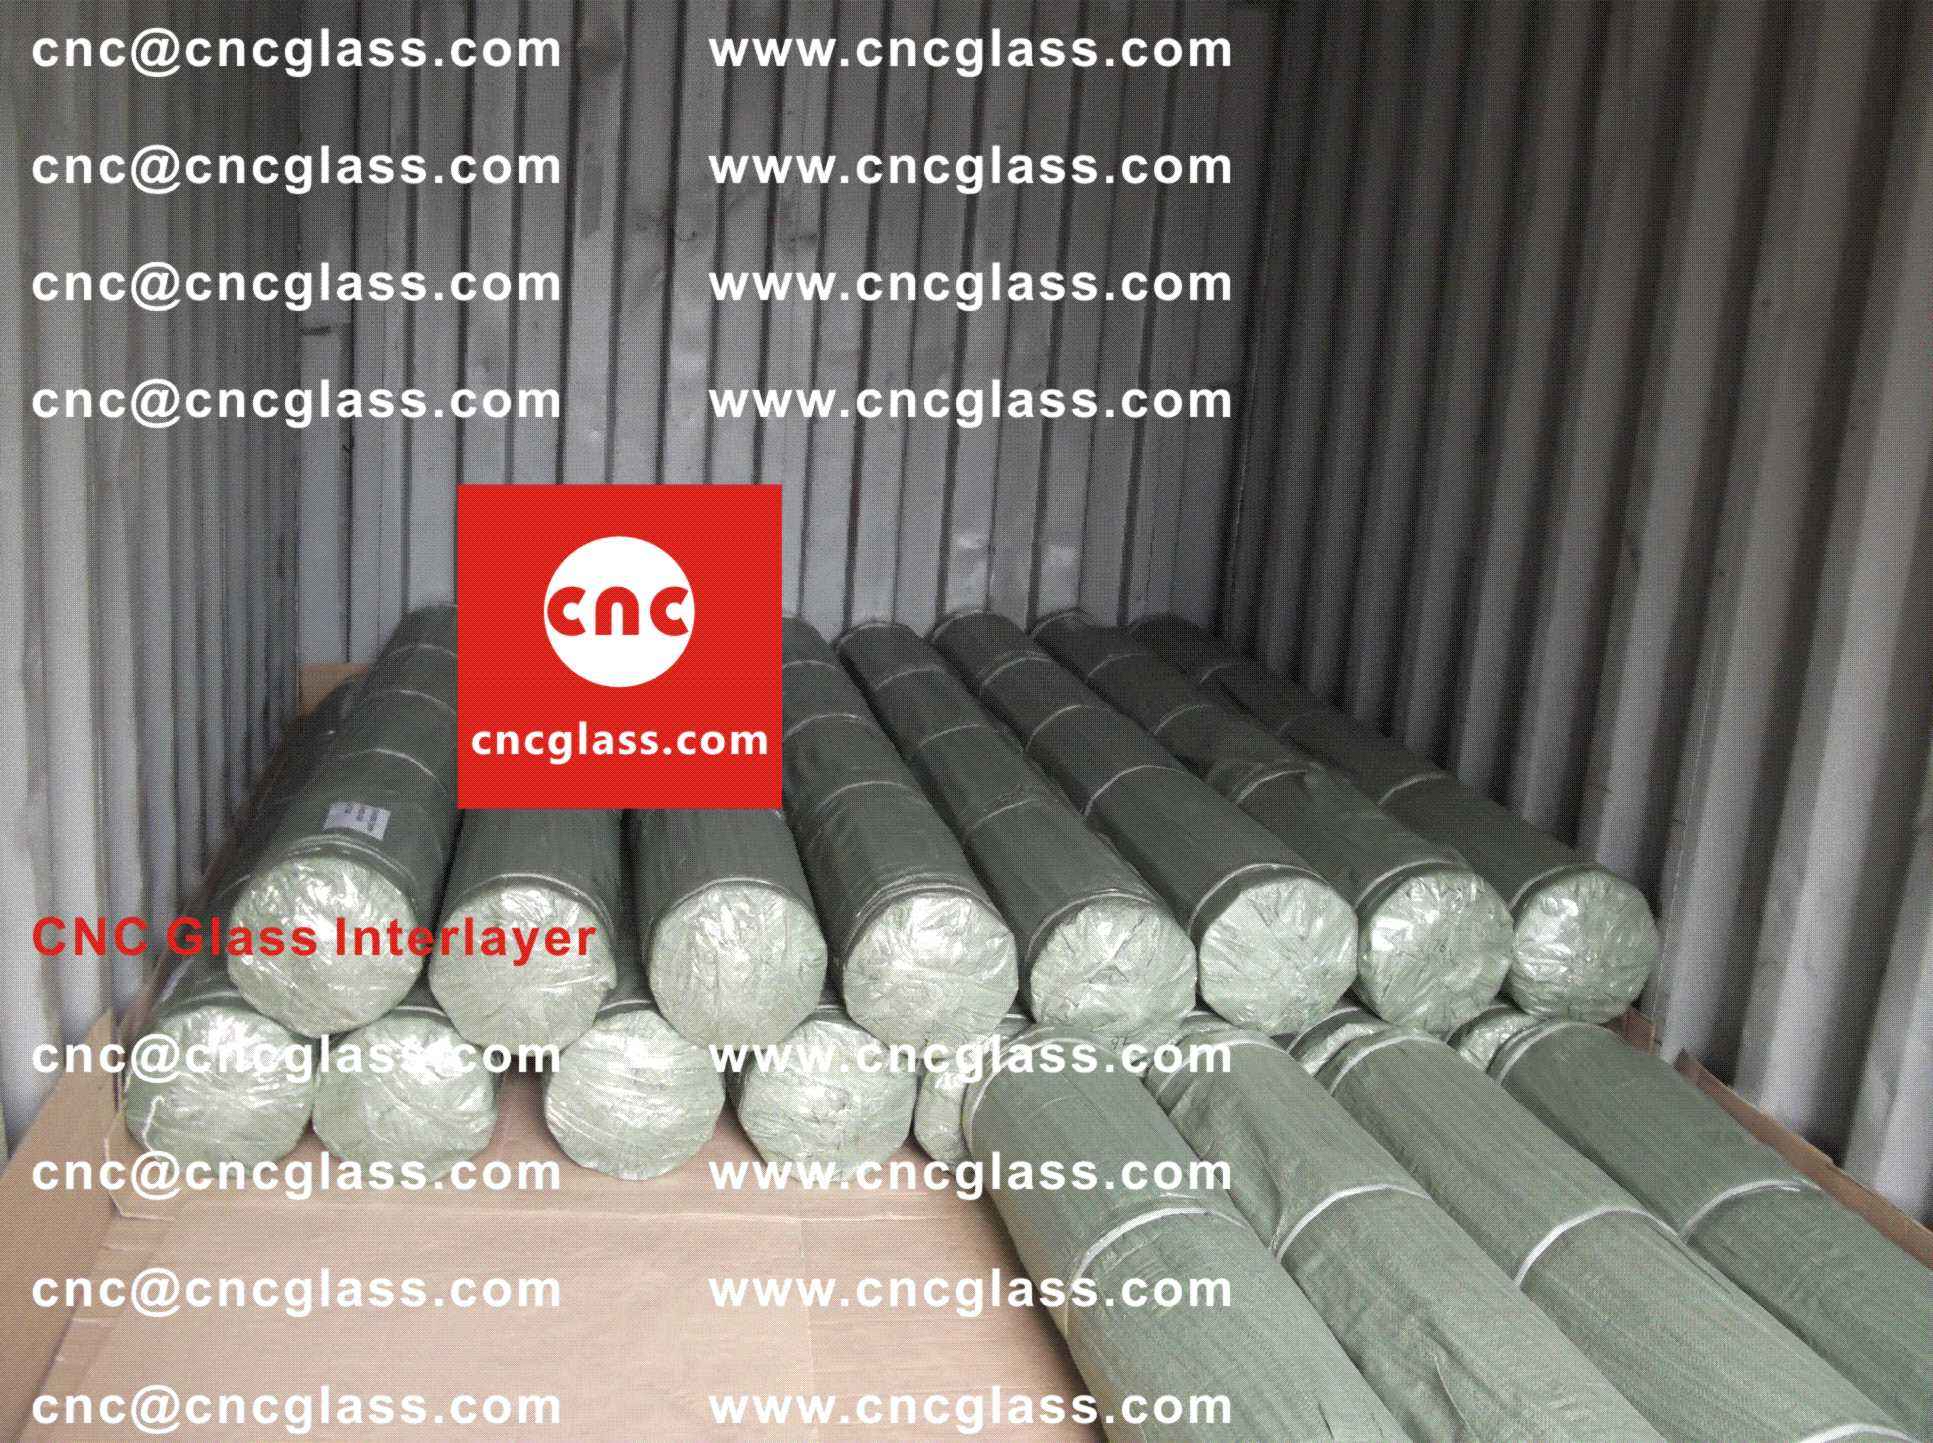 004 Packing Loading EVA Interlayer Film for Safety Laminated Glazing